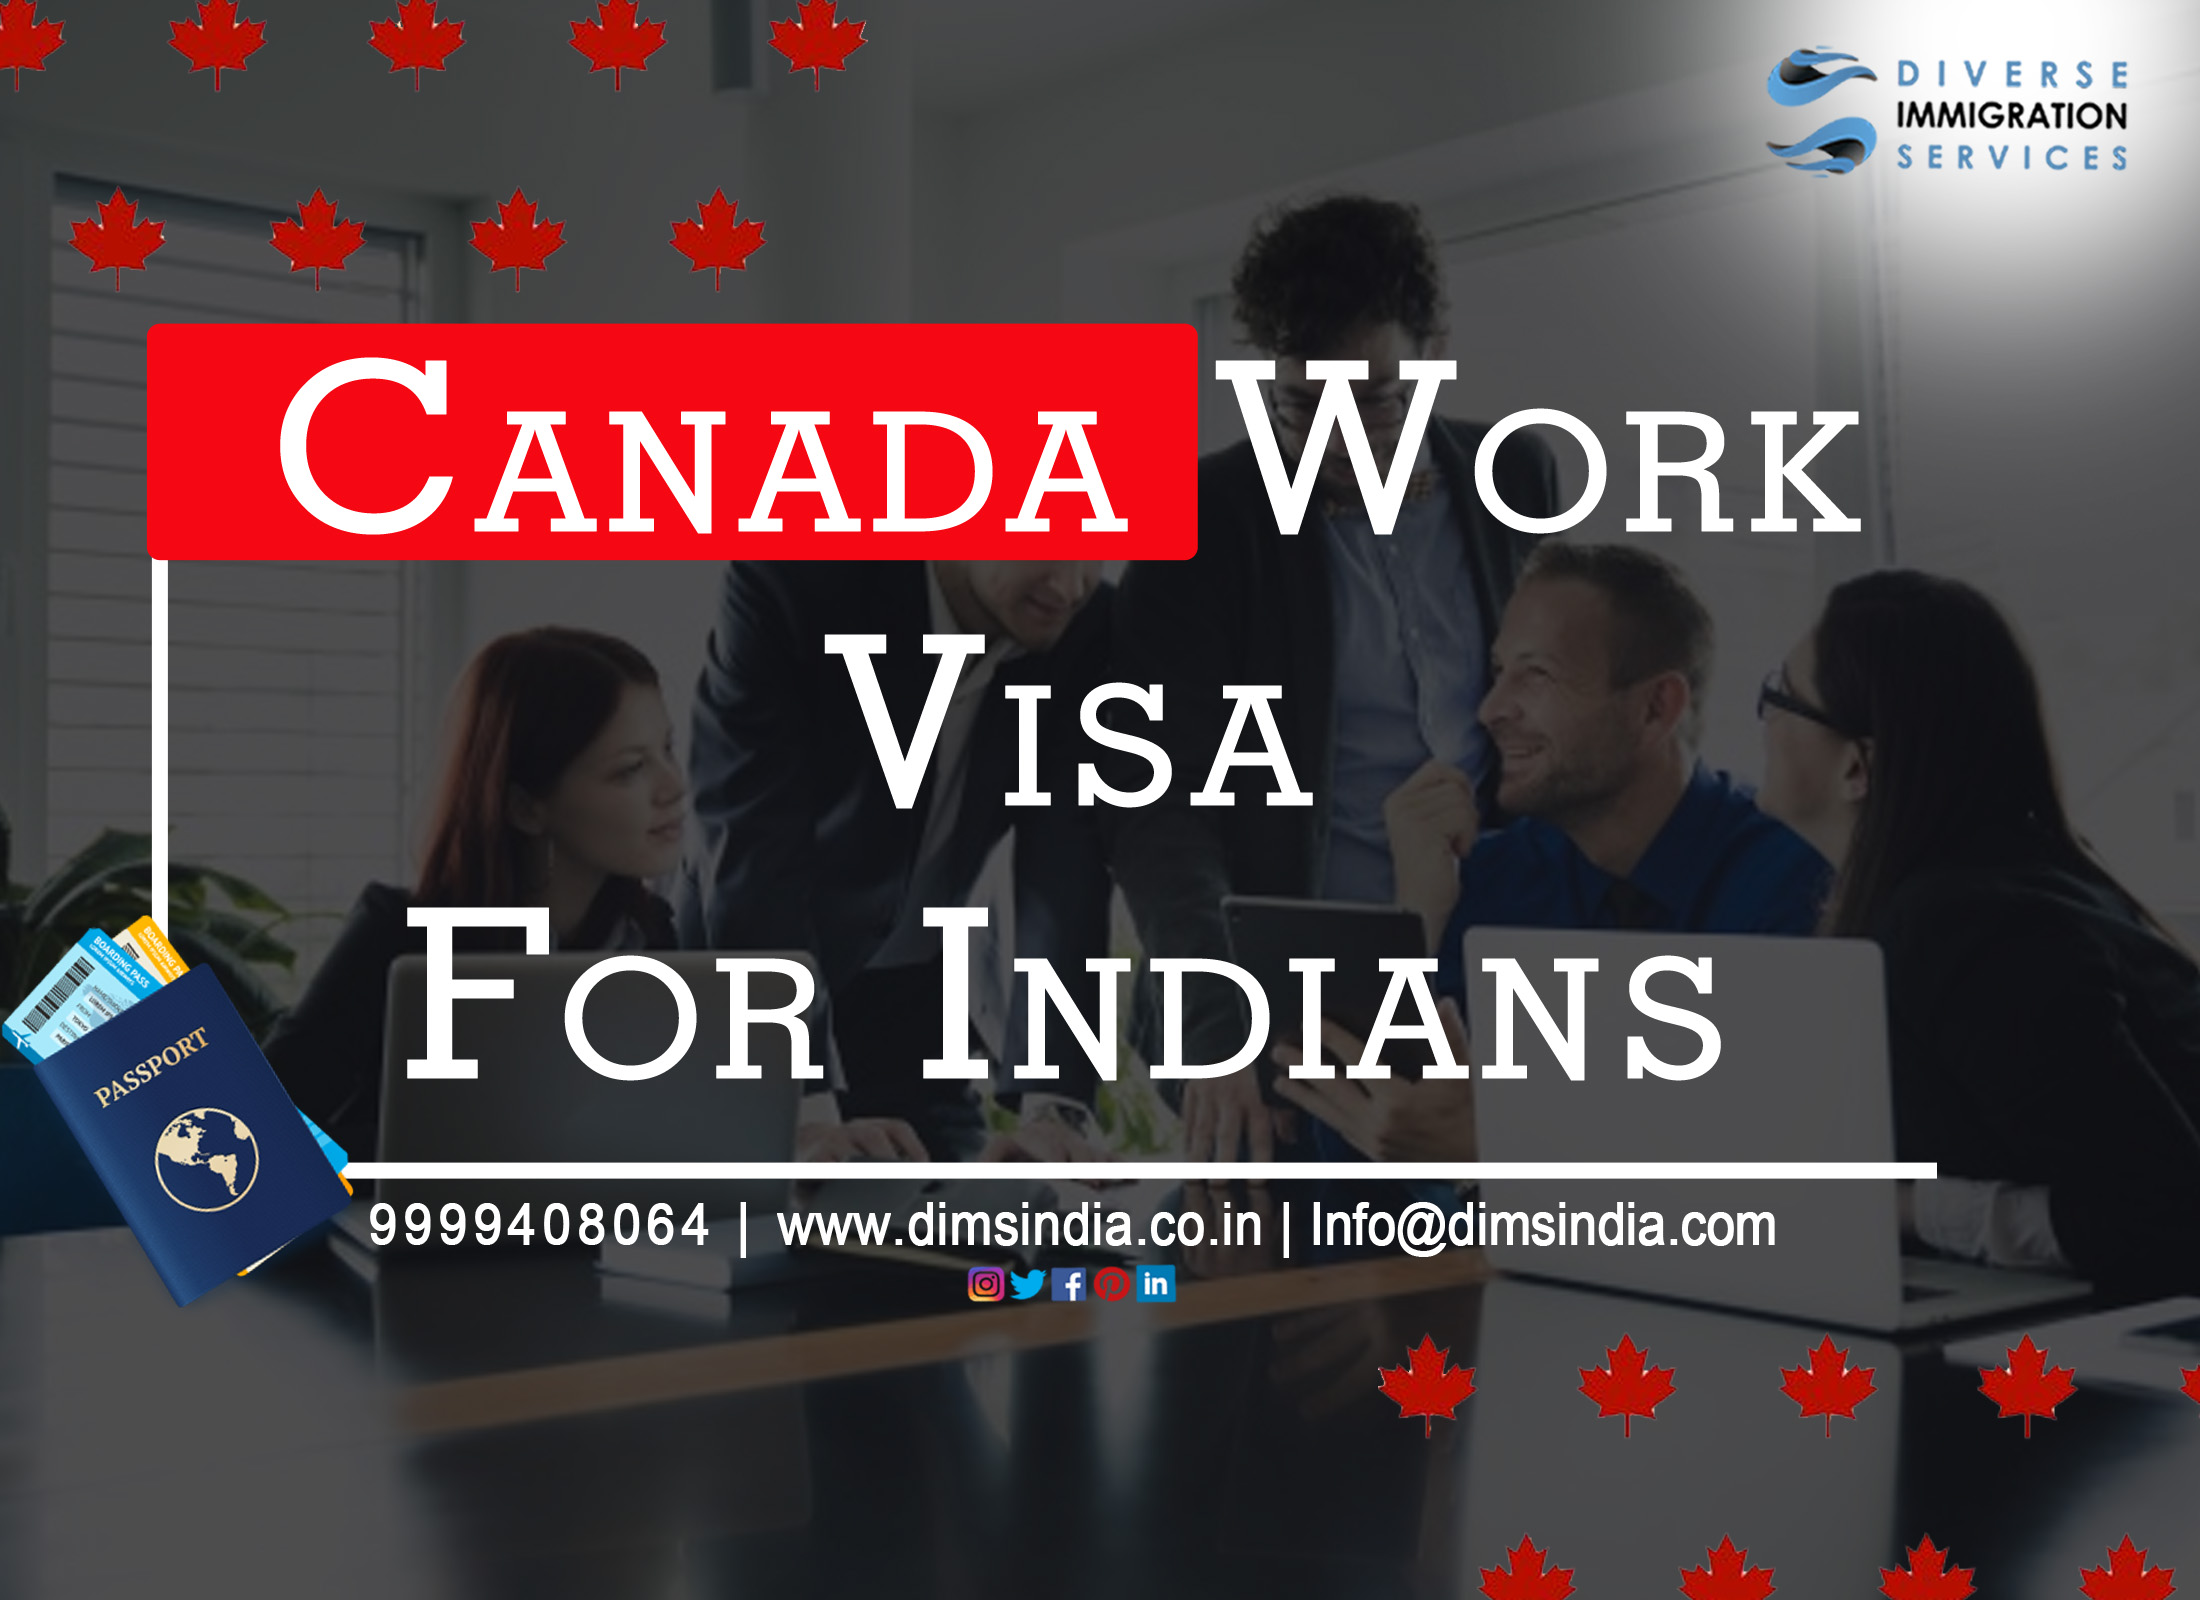 How long it will take to get Canada work visa for Indians